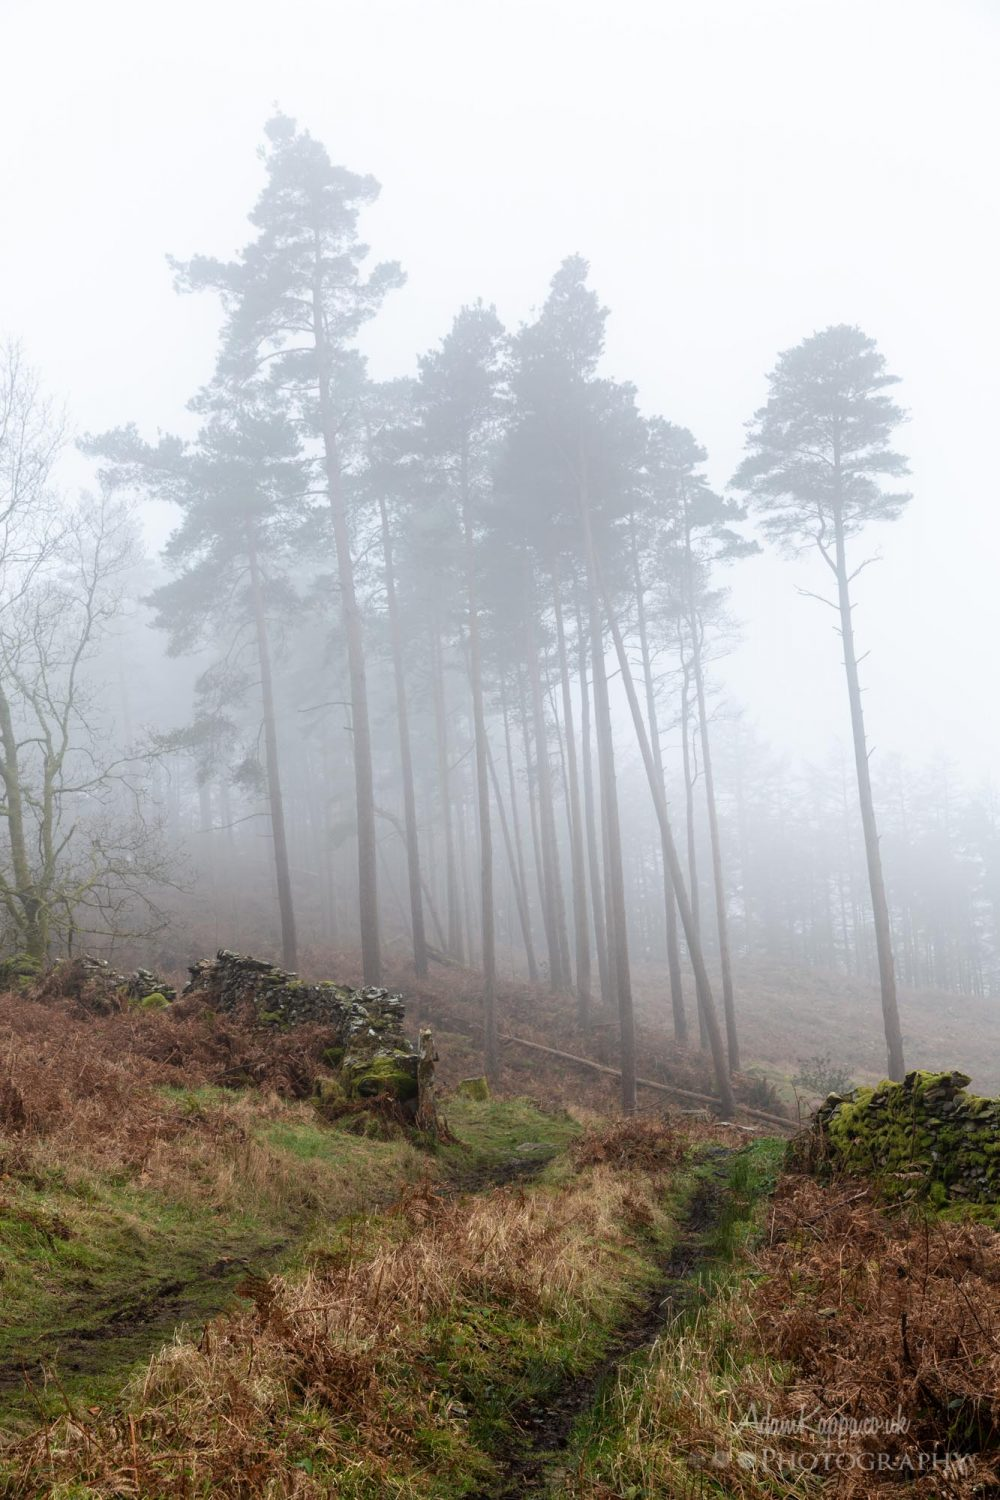 Woodland Photography In The Mist 1